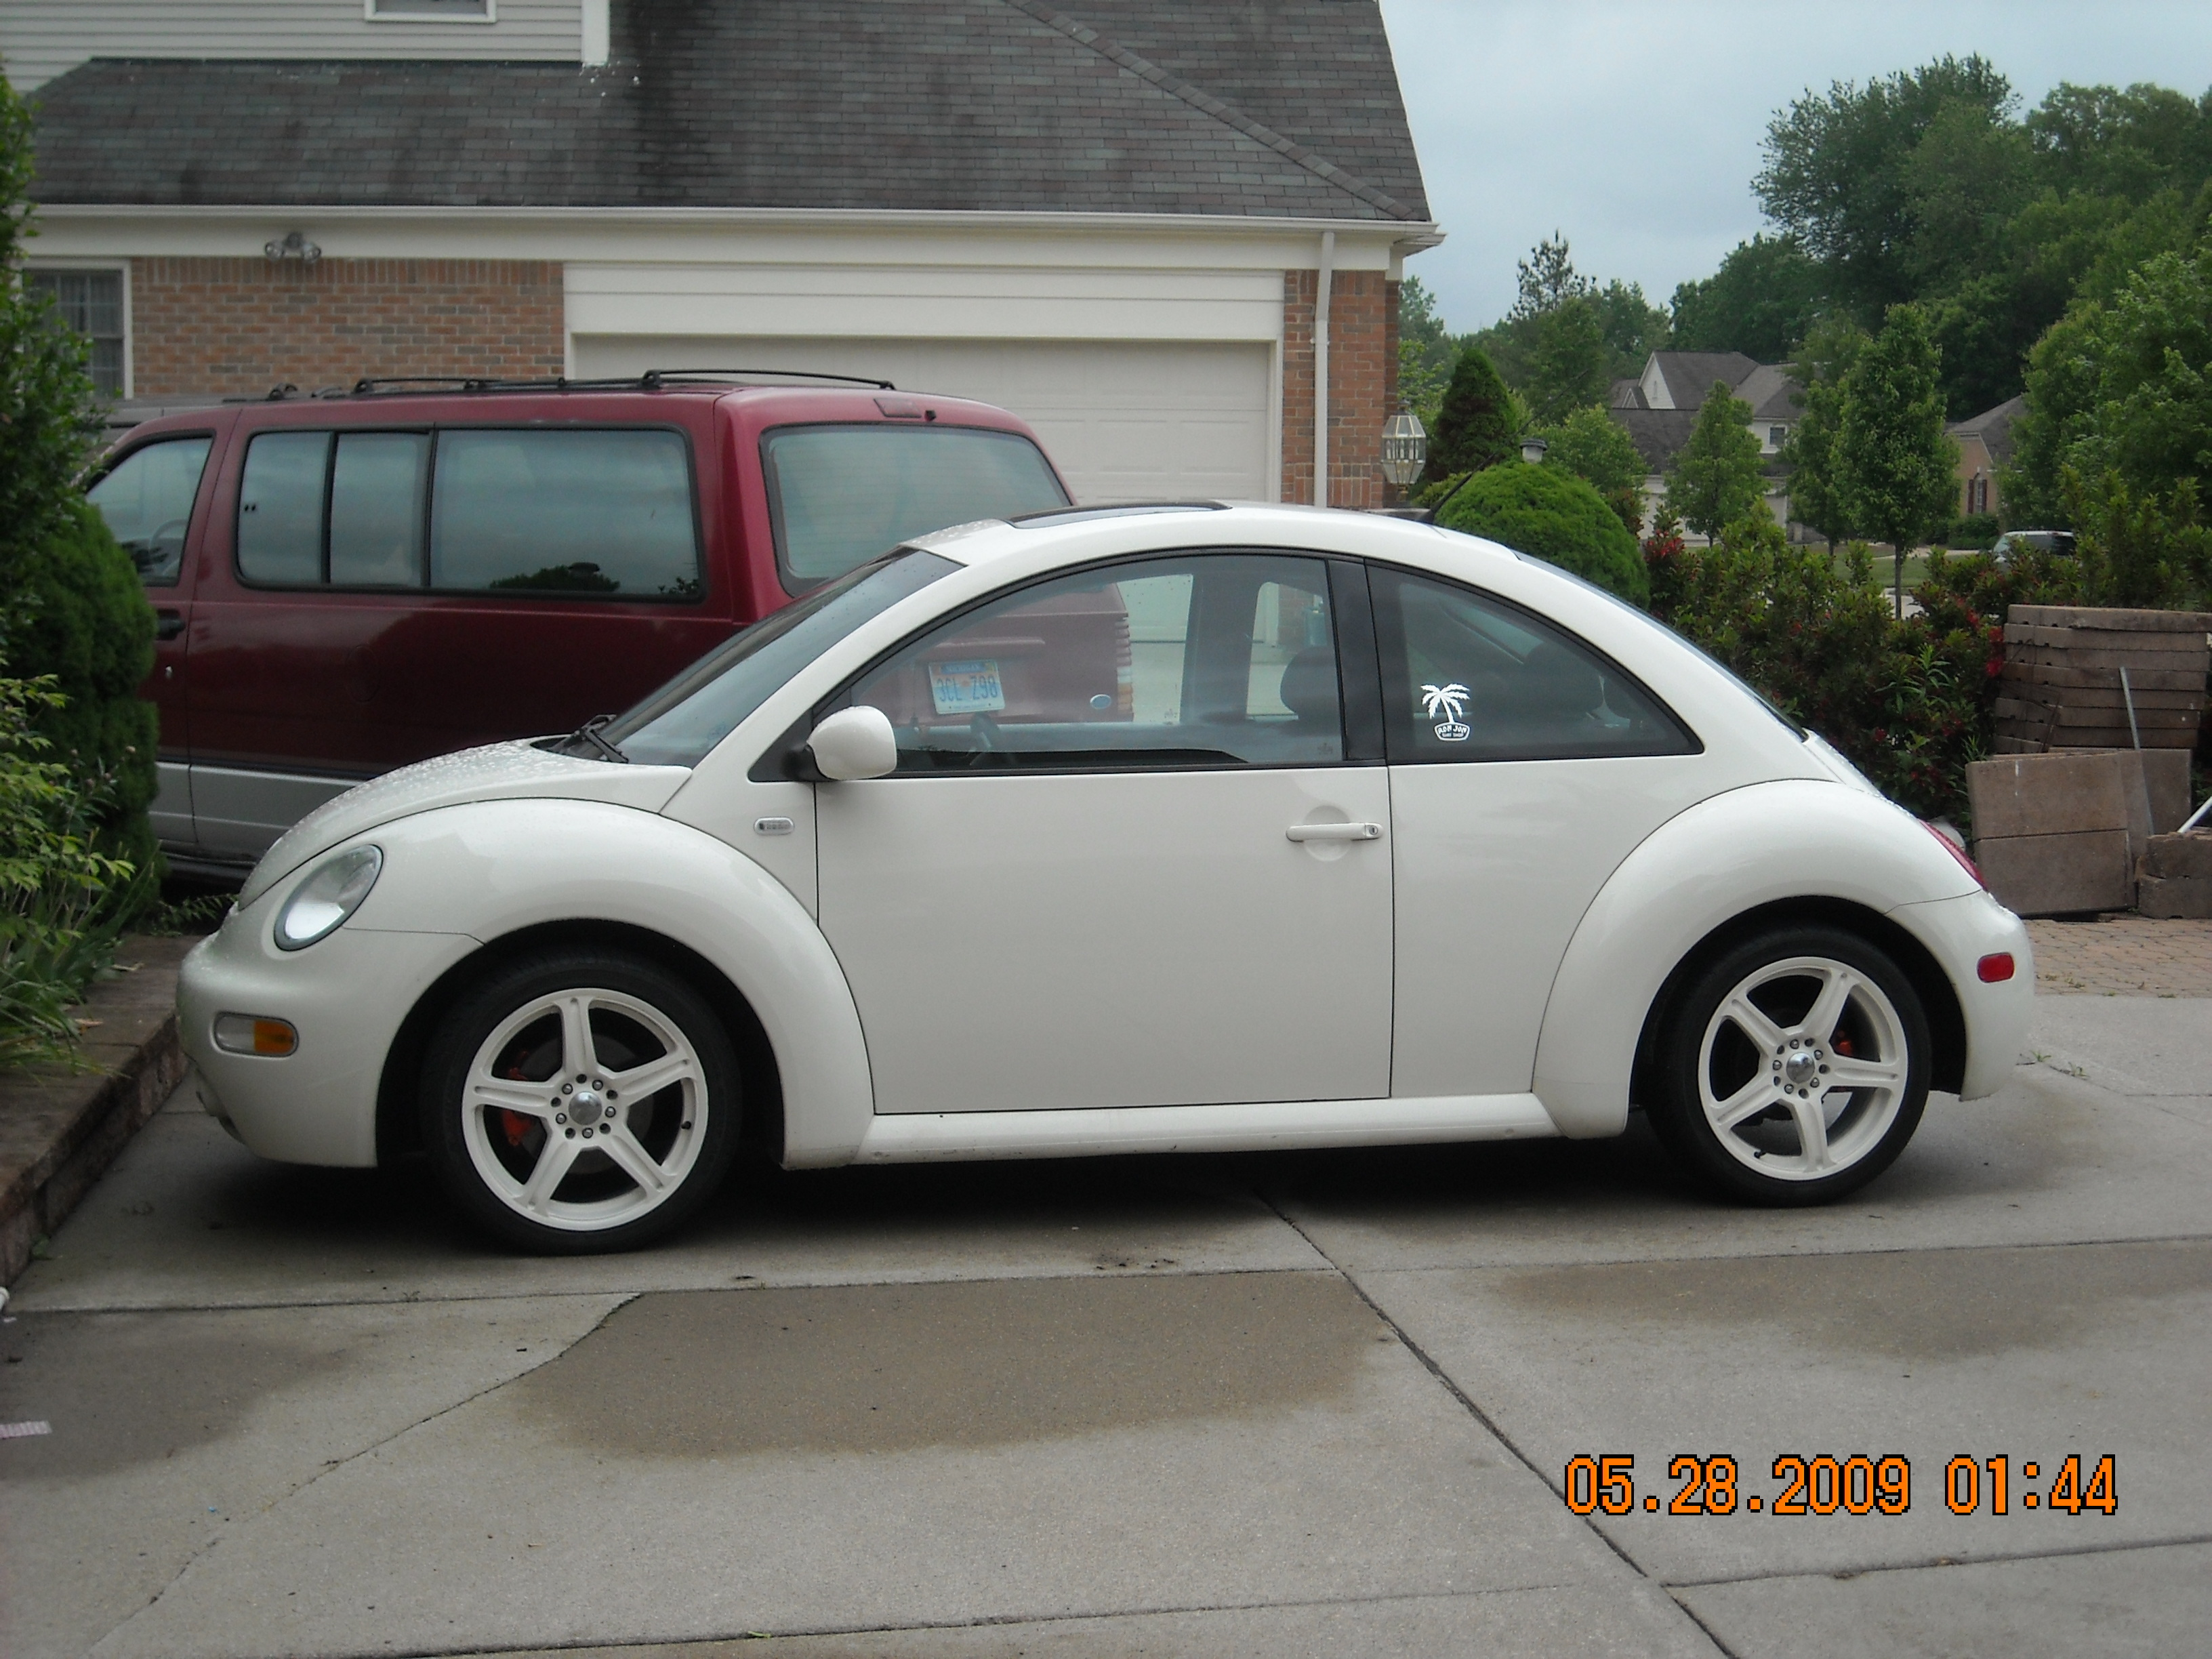 Shnormo05 2004 Volkswagen Beetle Specs, Photos, Modification Info at CarDomain